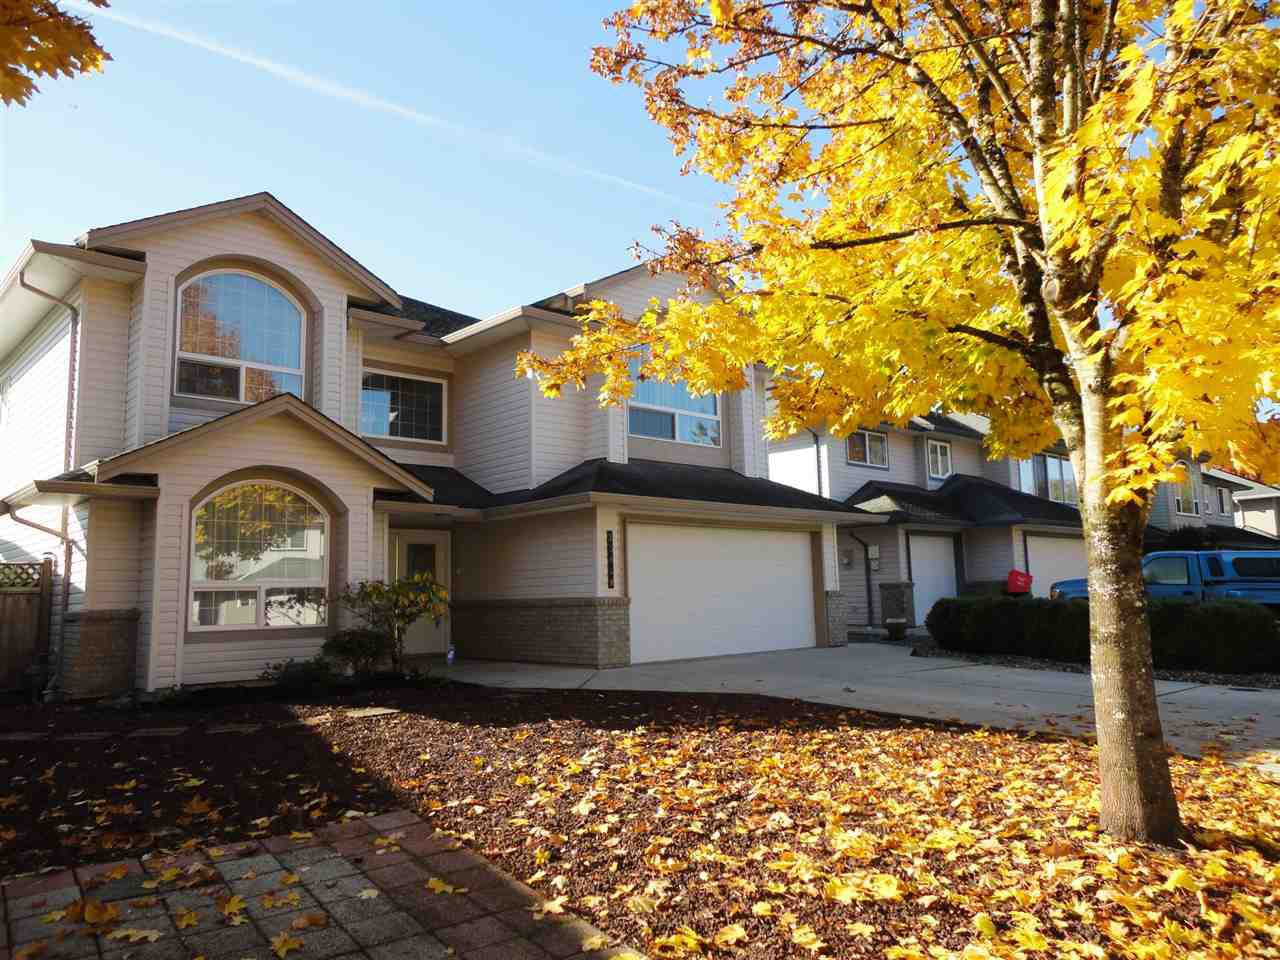 Main Photo: 23848 113B AVENUE in Maple Ridge: Cottonwood MR House for sale : MLS®# R2317594